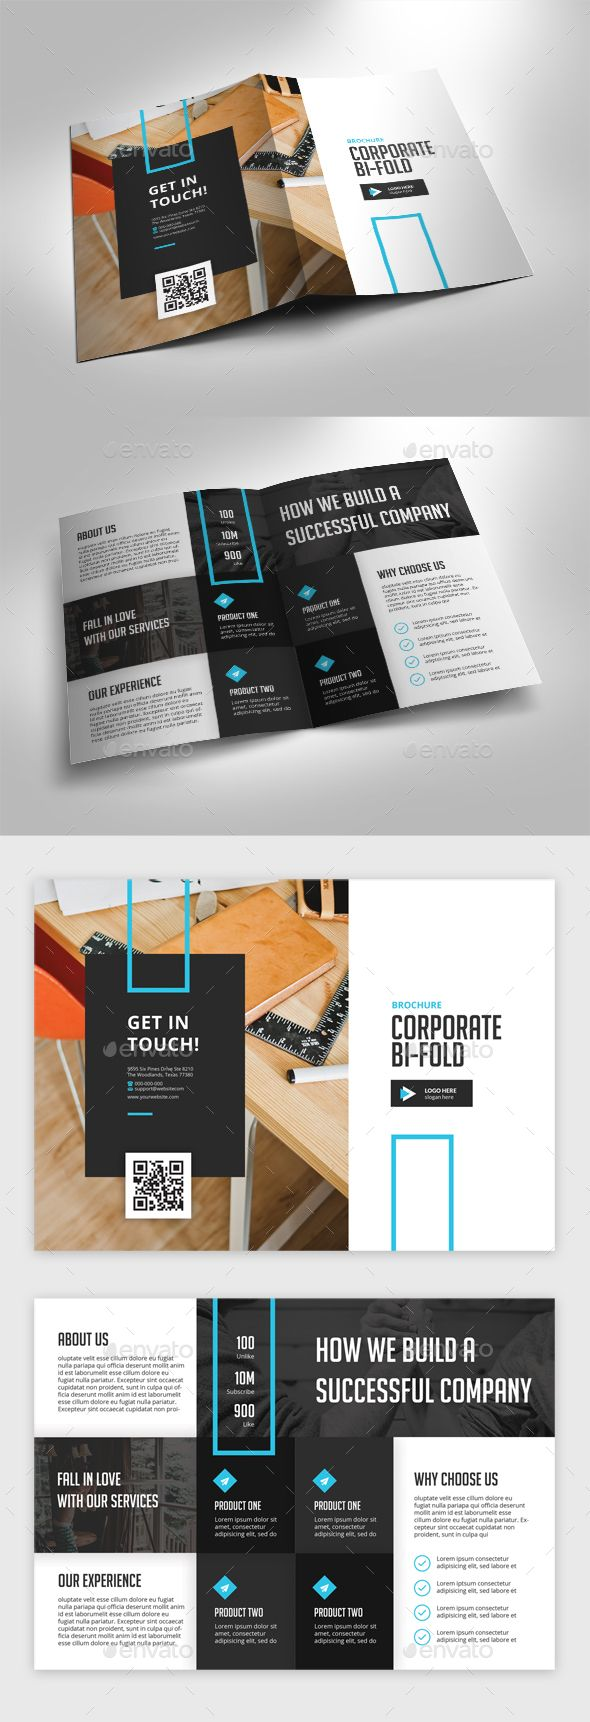 Bifold Corporate Brochure Template PSD